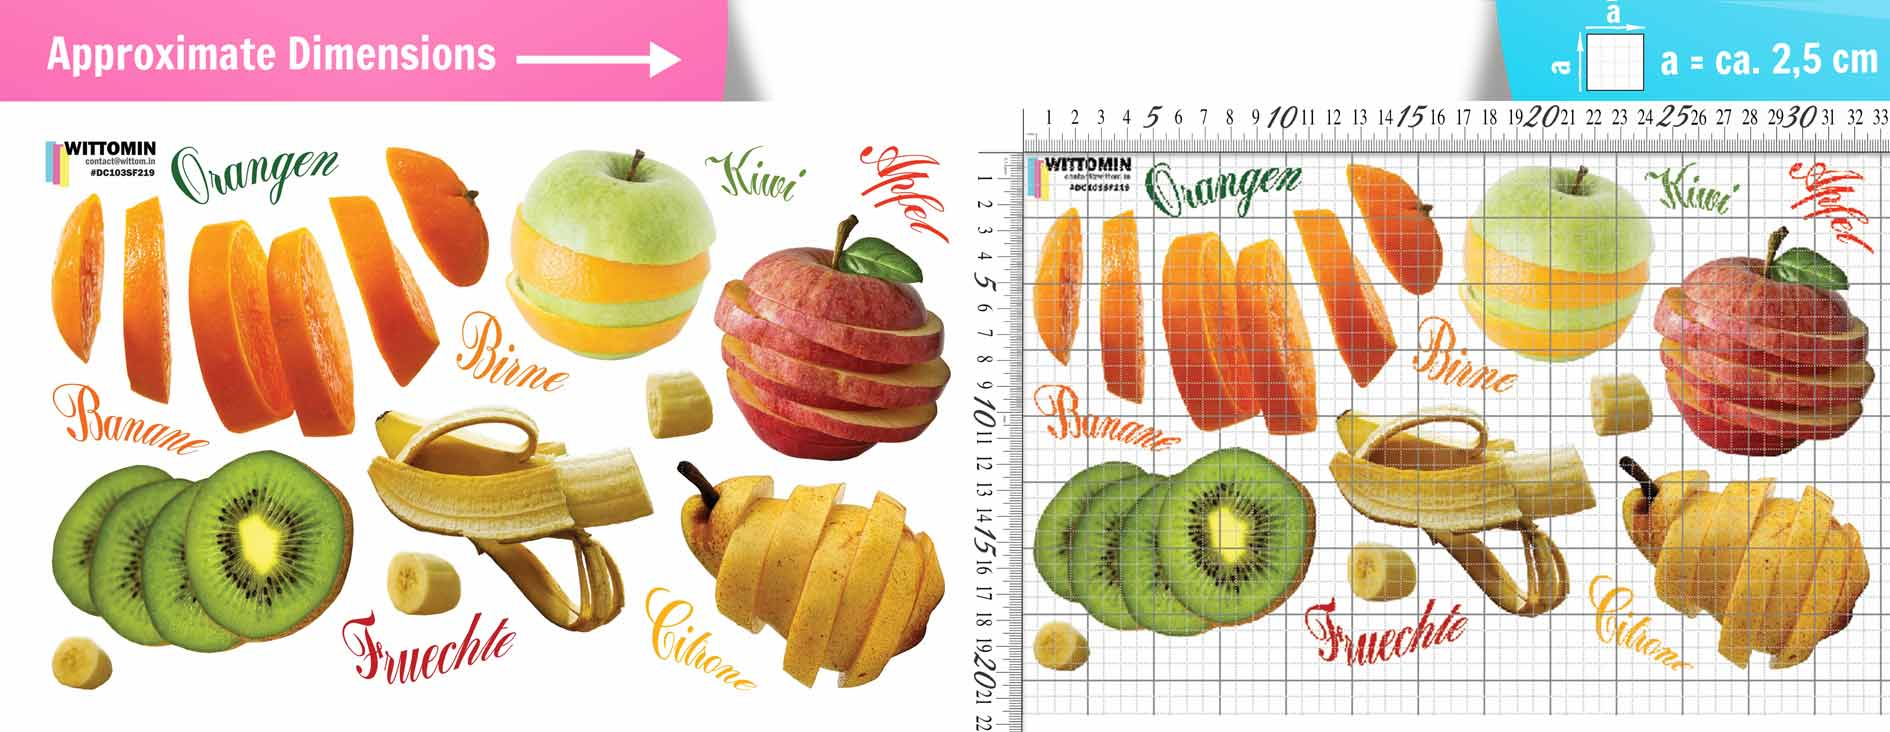 Sliced fruits sticker set from Wittomin